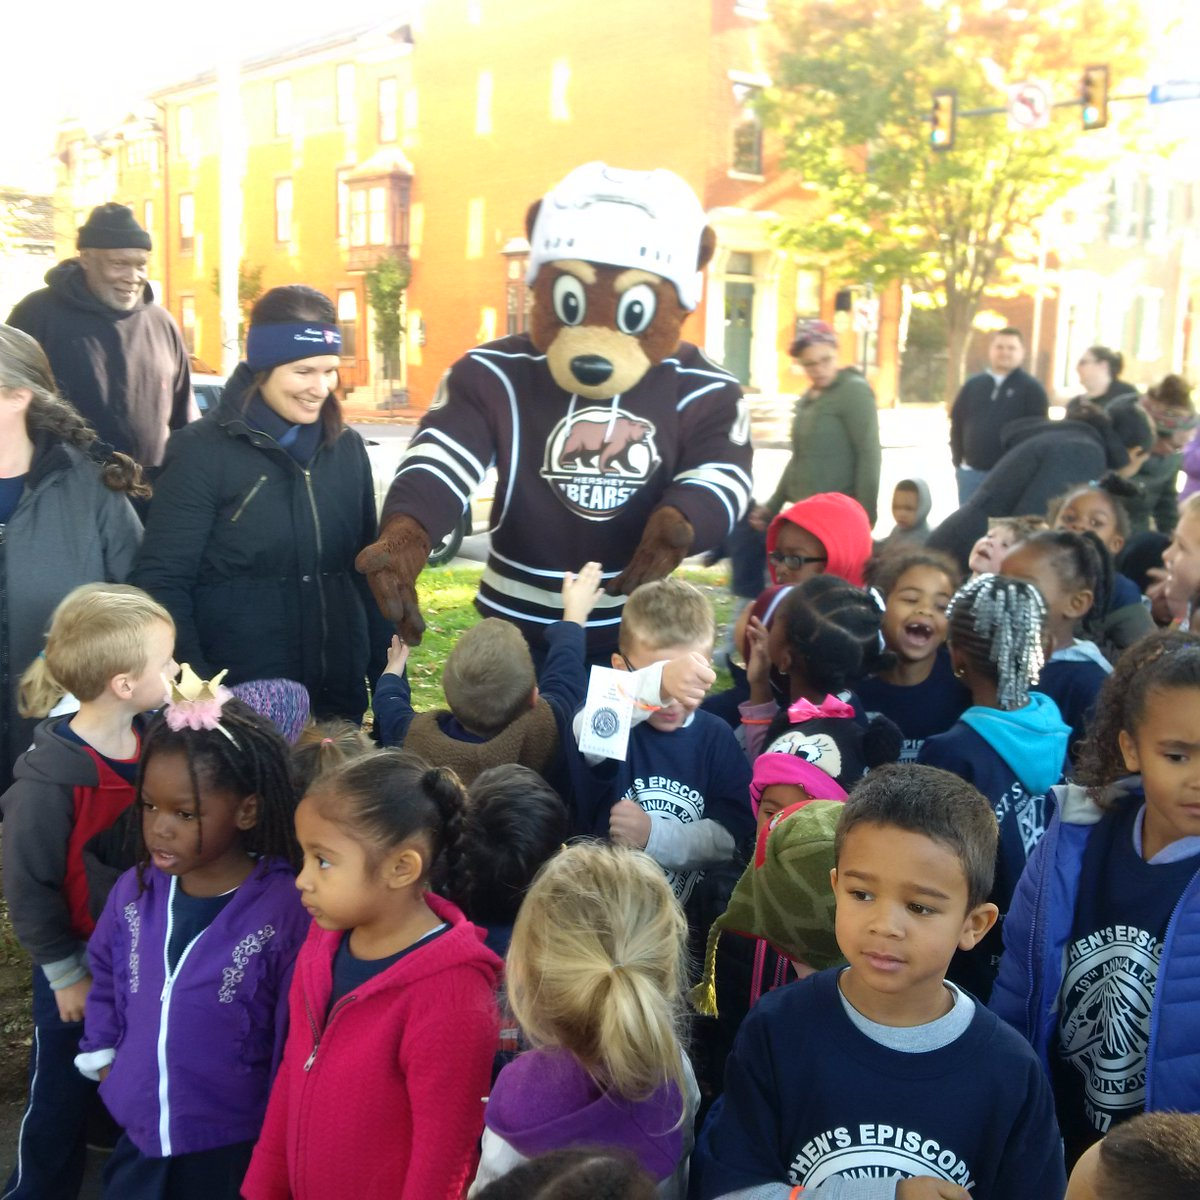 Thanks to students, parents, faculty, sponsors (Coco & Grrrounder too) for help making Race for Education a success